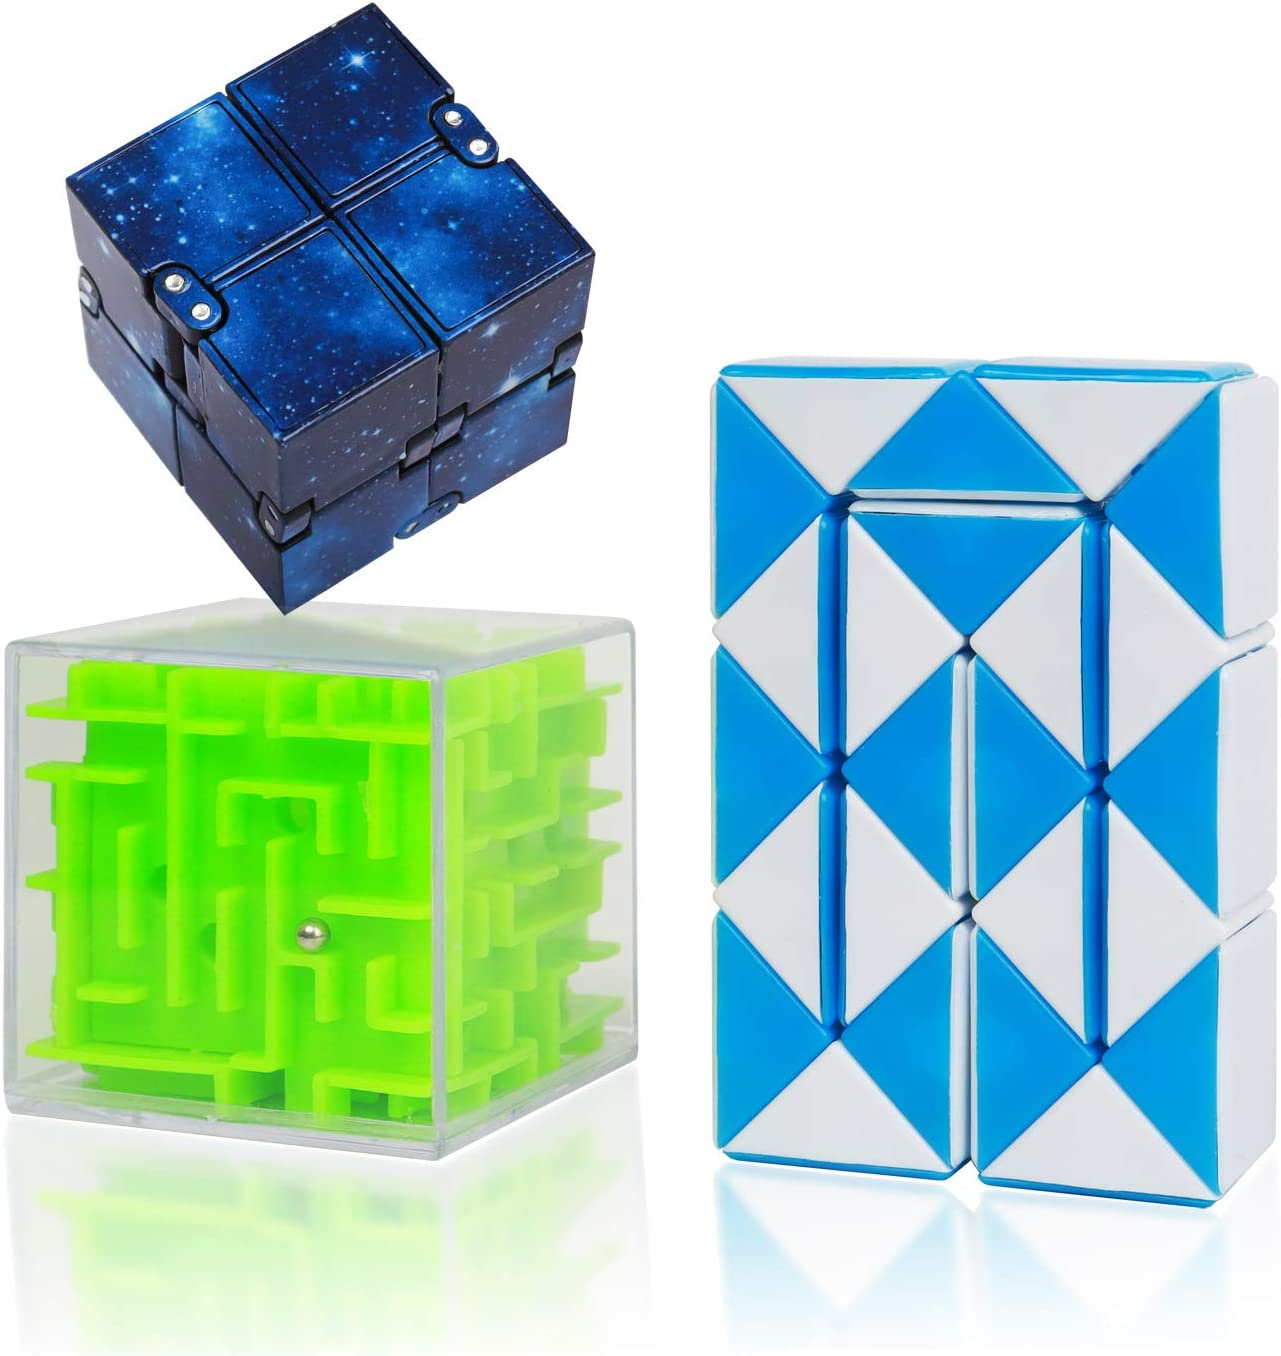 CONQLOAD Fidget Toys Blocks Infinity Cube 24 Blocks Magic Speed Cubes 3D Maze Puzzle Cube Stress Relieving Fidgeting /& IQ Toys Sets for Children Adults